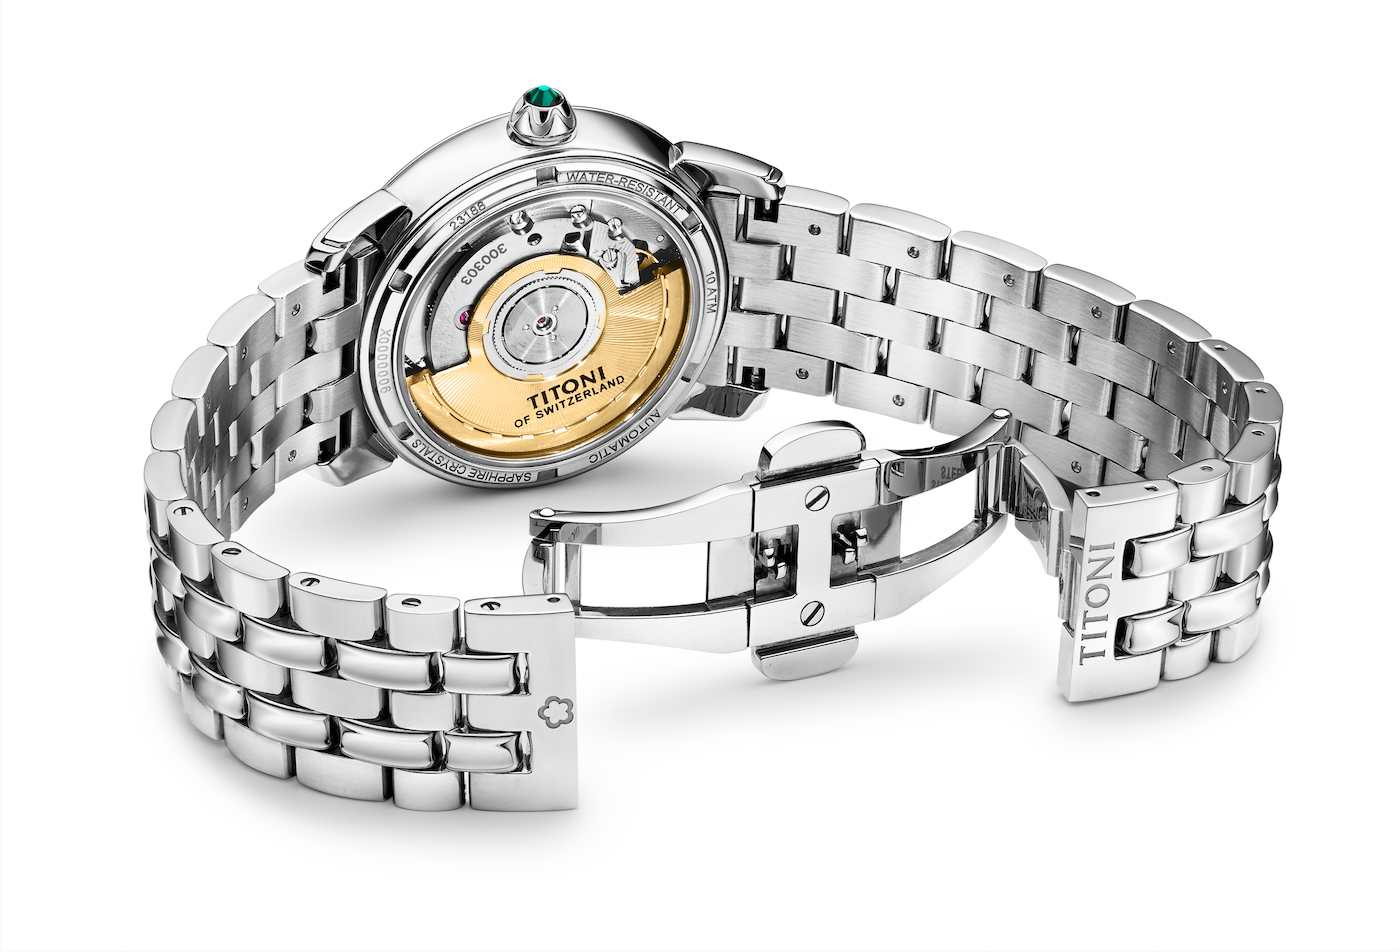 Introducing the Titoni Master Series Ladies